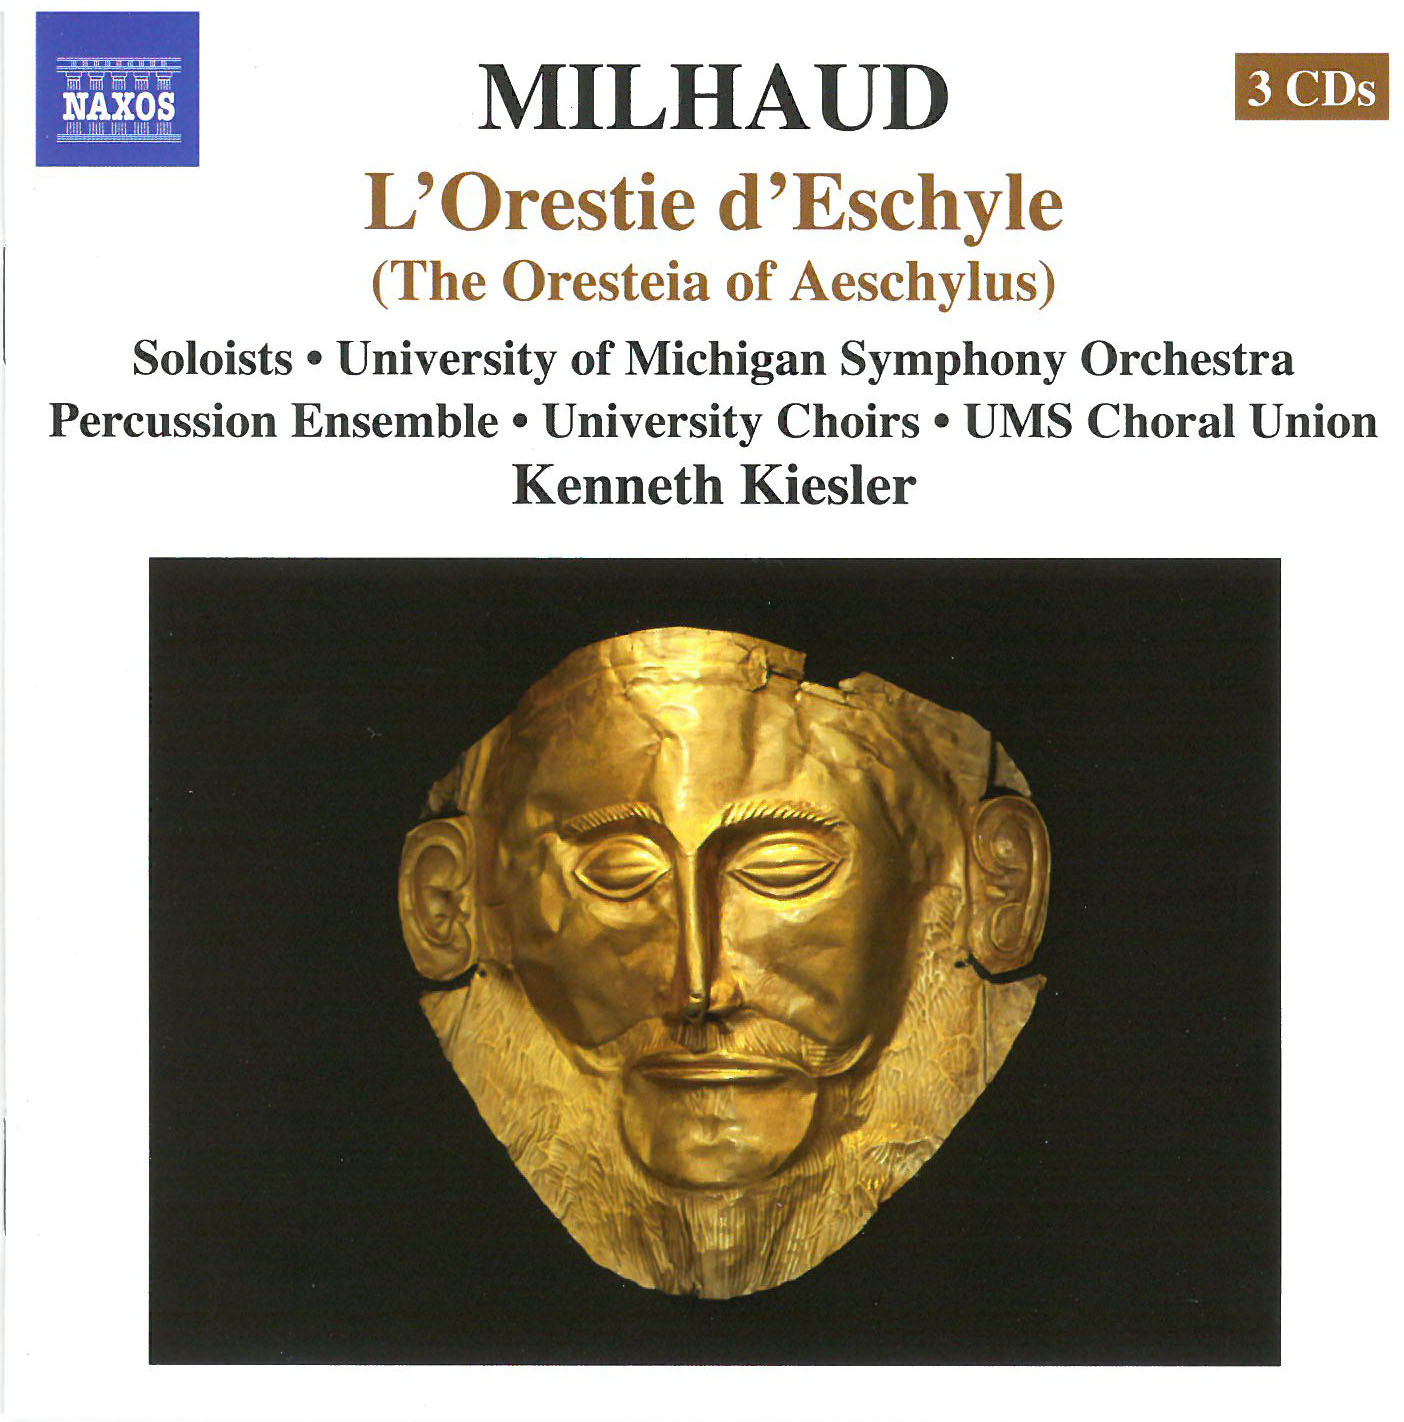 01 Vocal 05 Milhaud Orestie